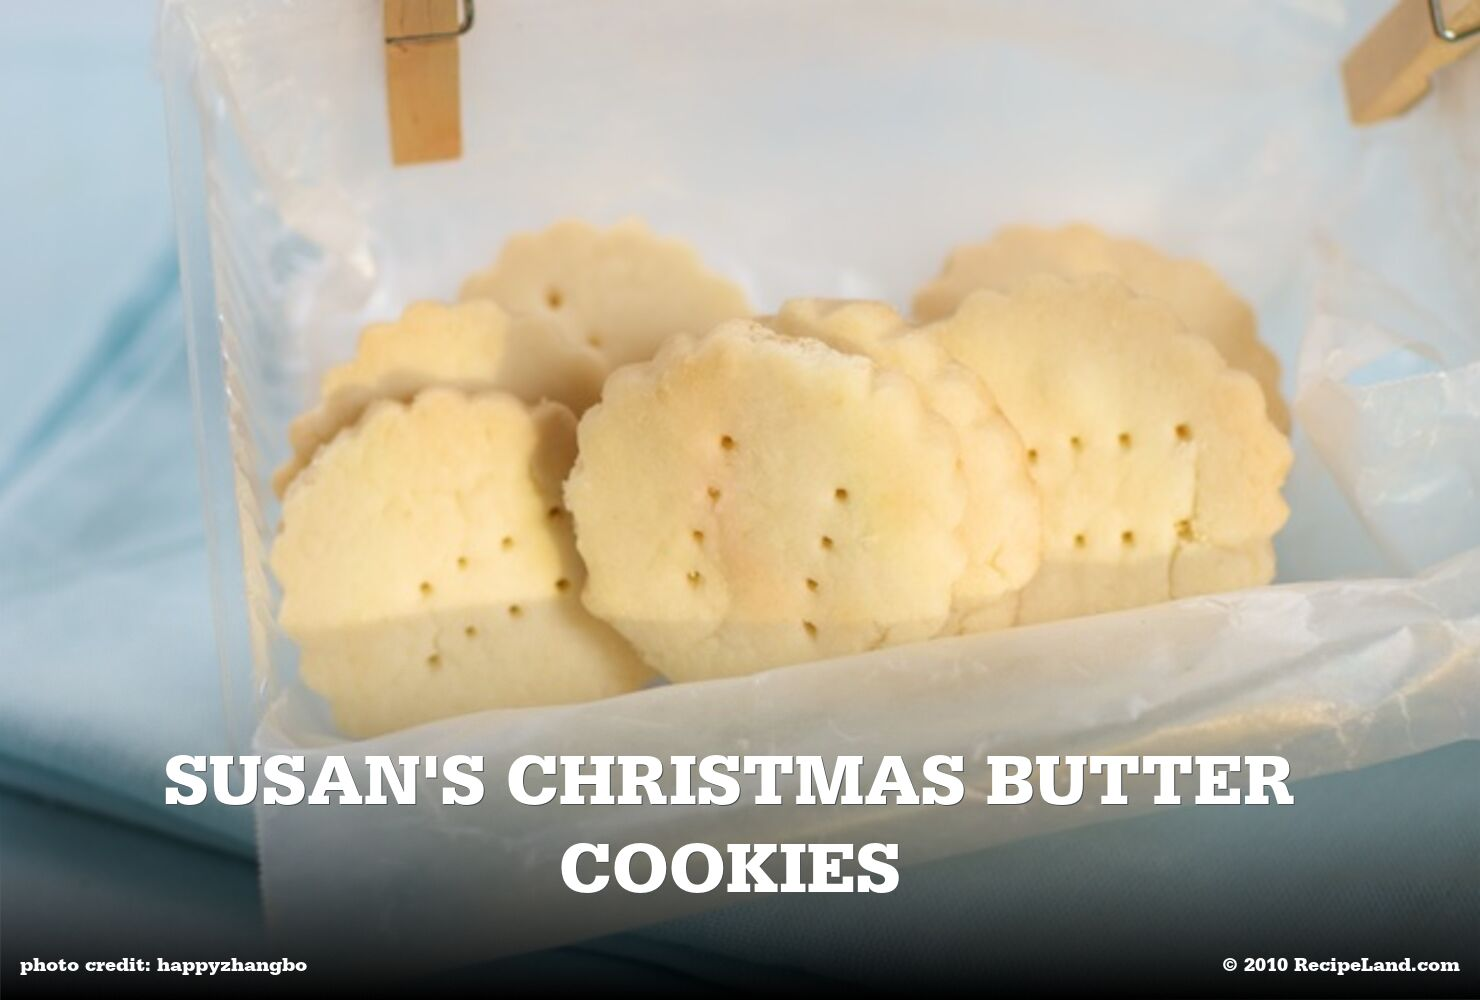 Susan's Christmas Butter Cookies